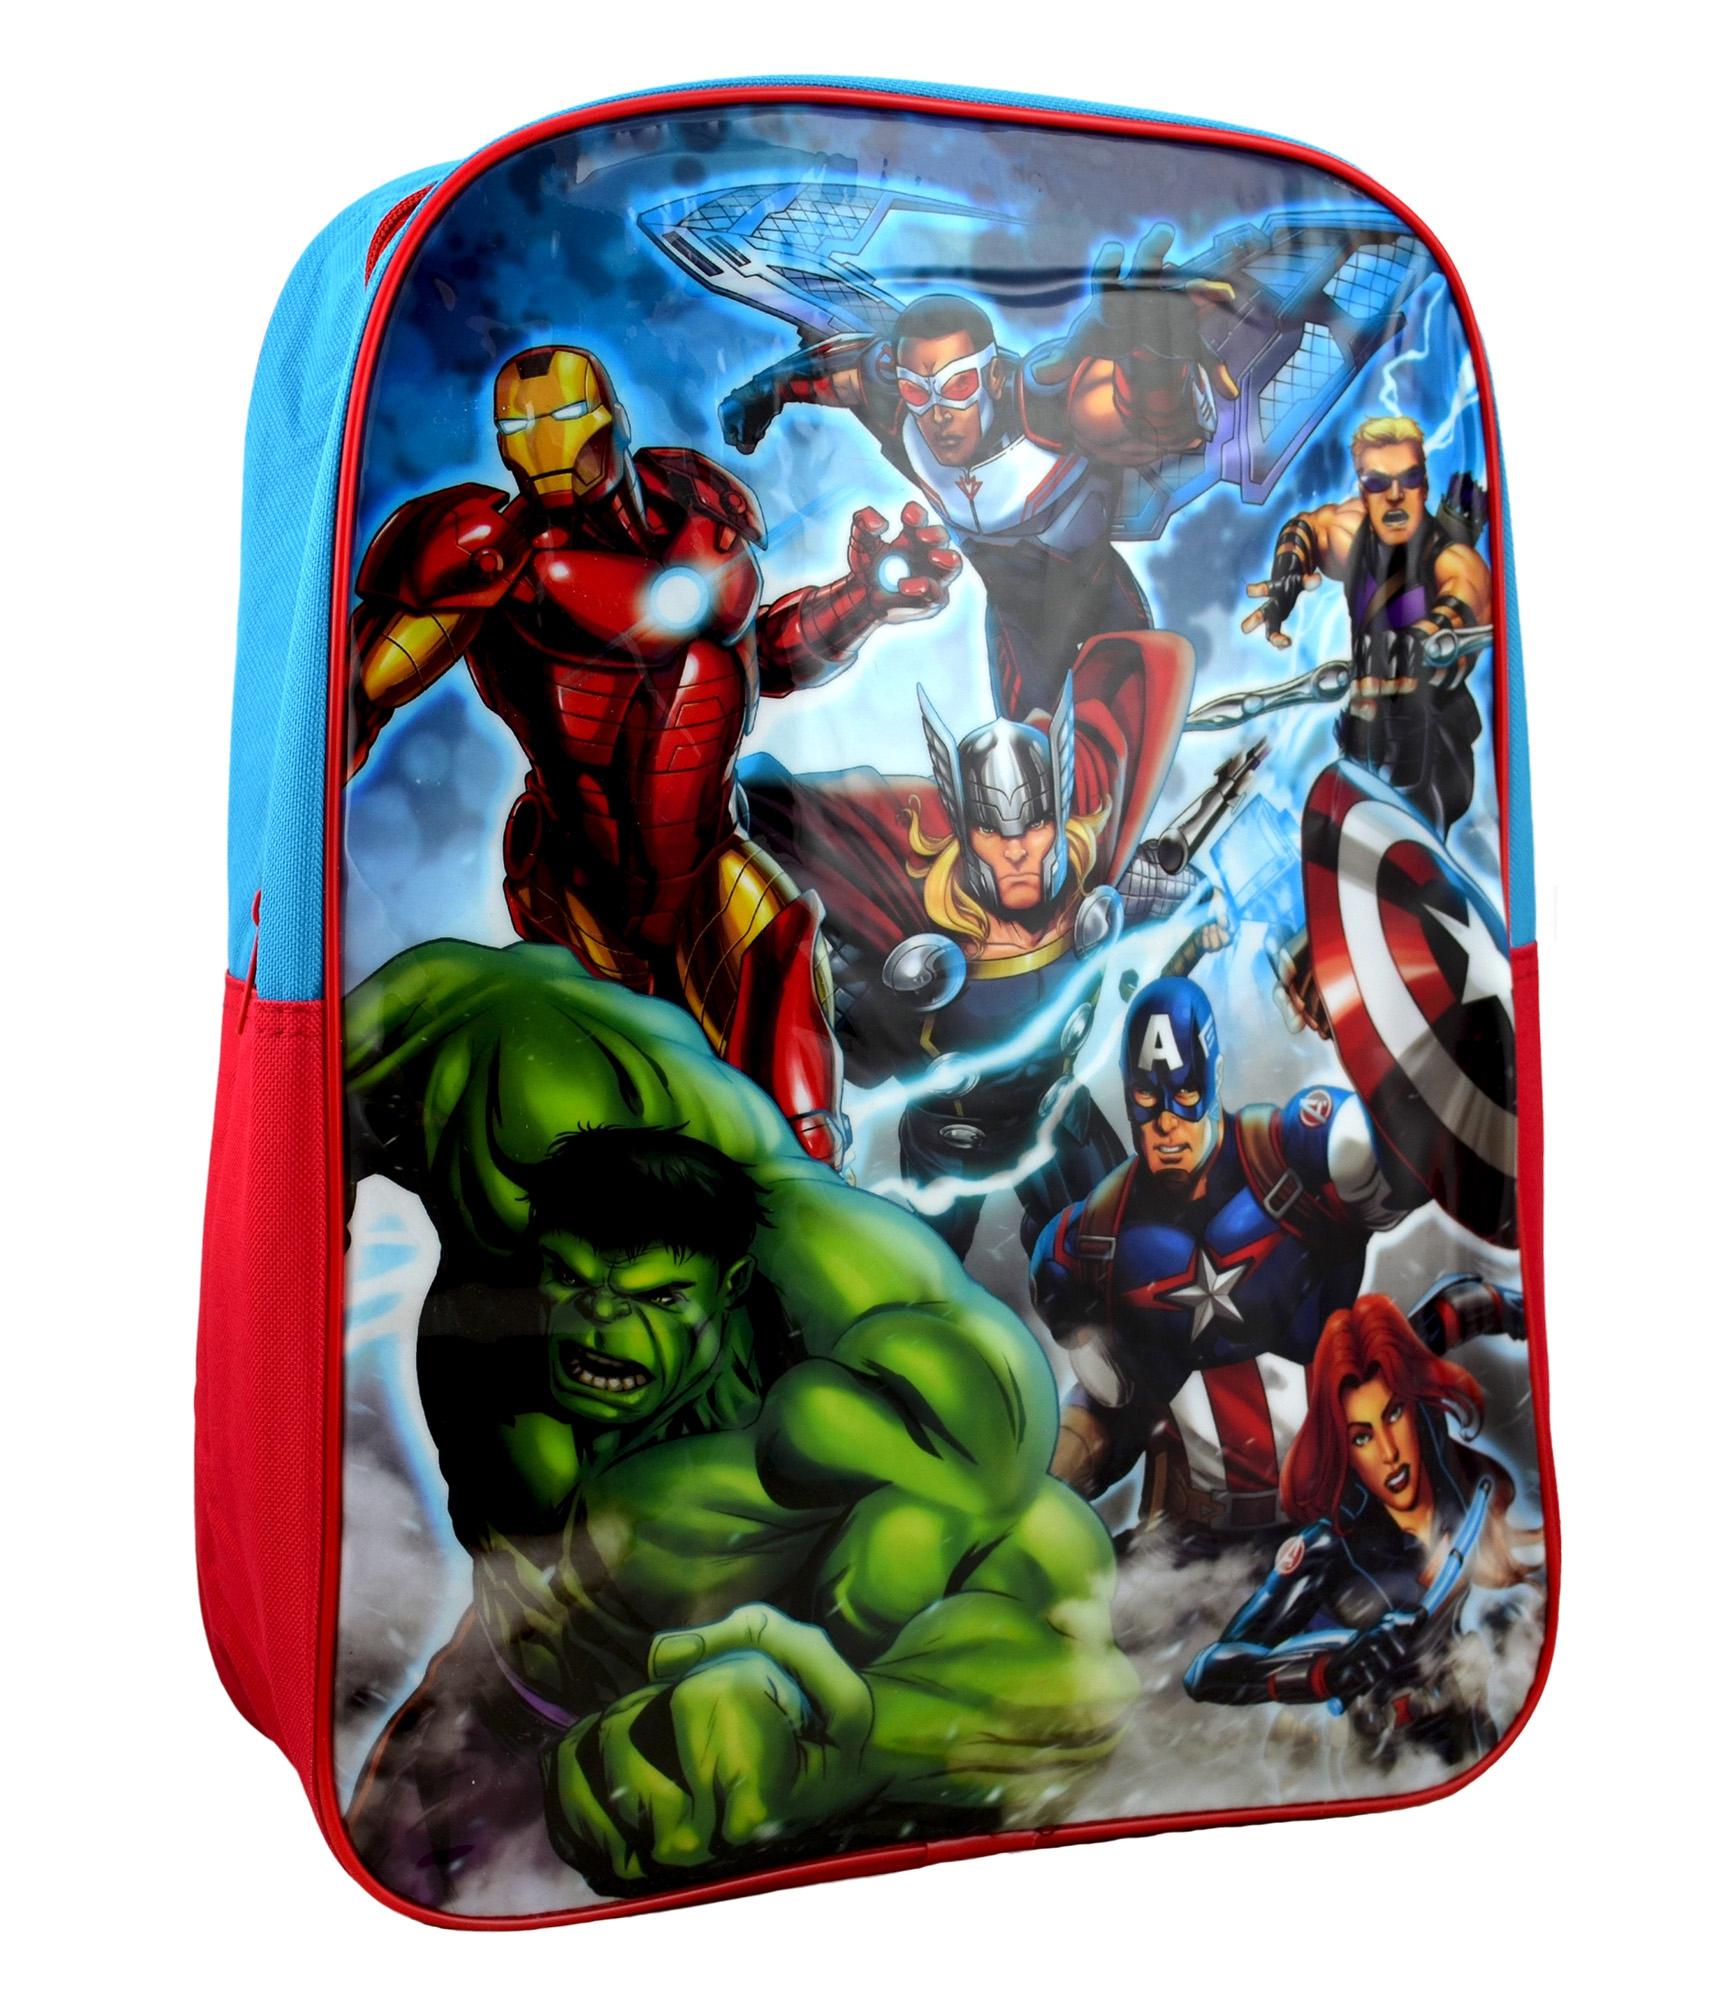 Avengers 'Force' Junior School Bag Rucksack Backpack